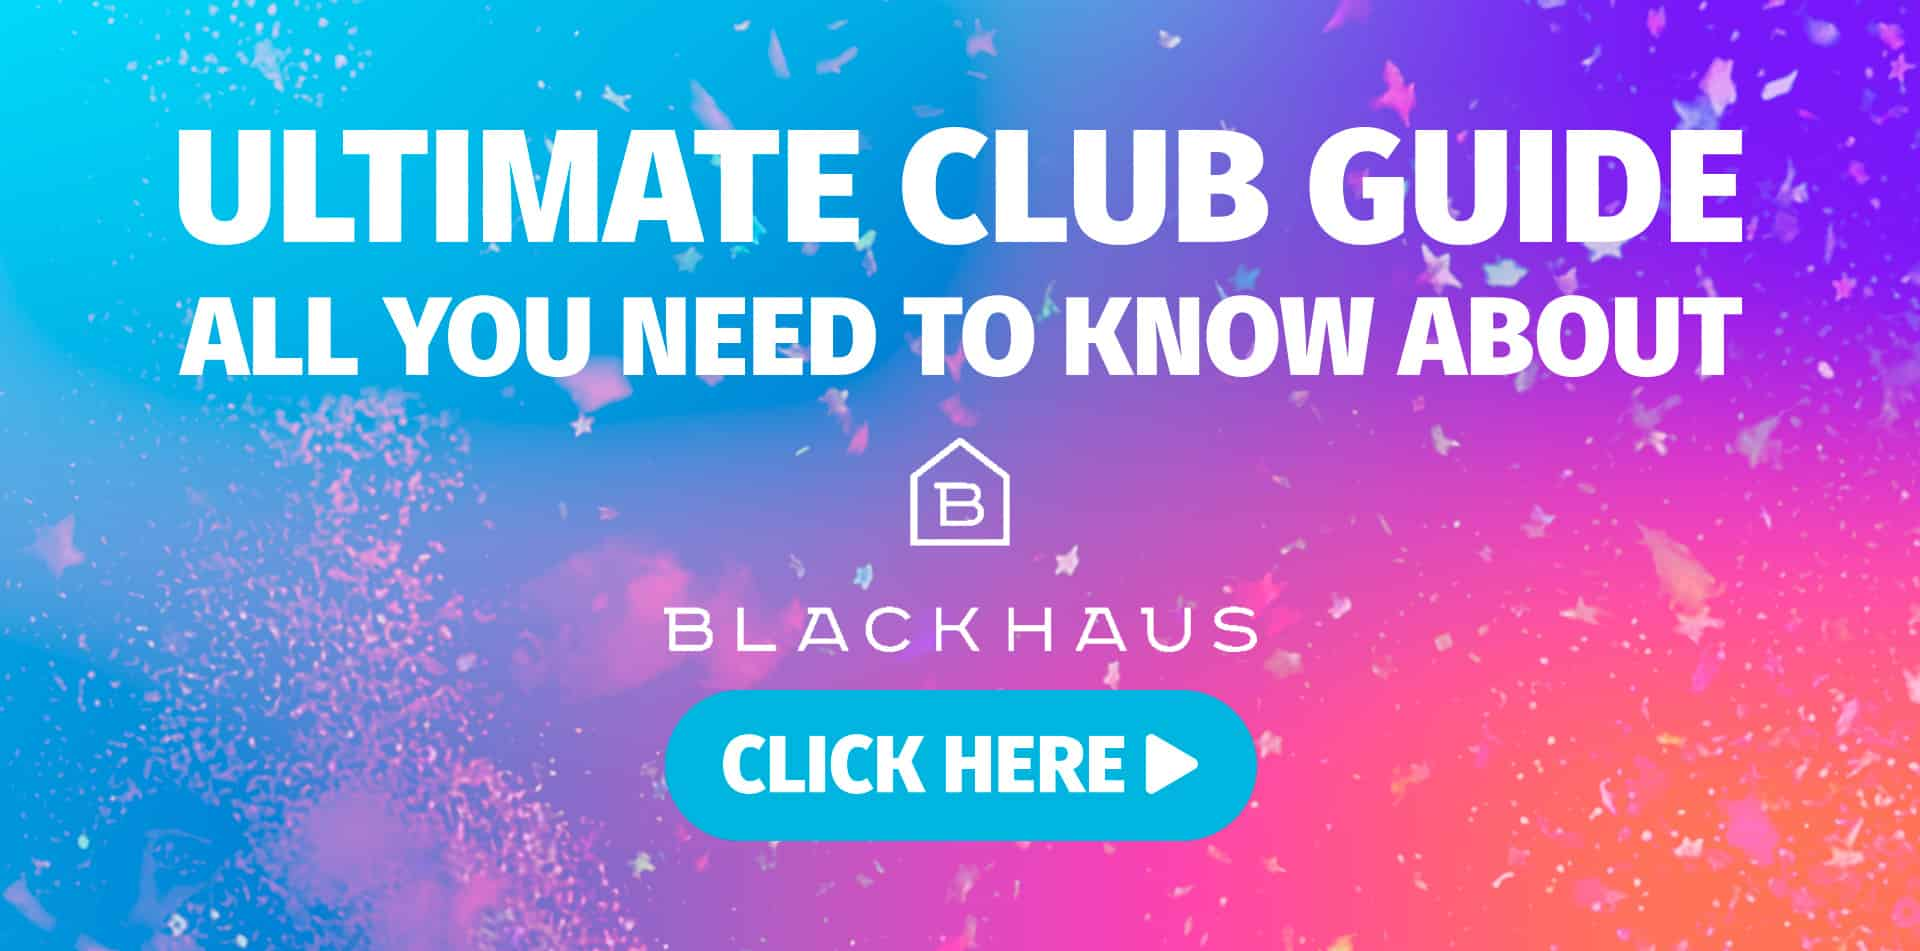 Ultimate Club Guide - Blackhaus